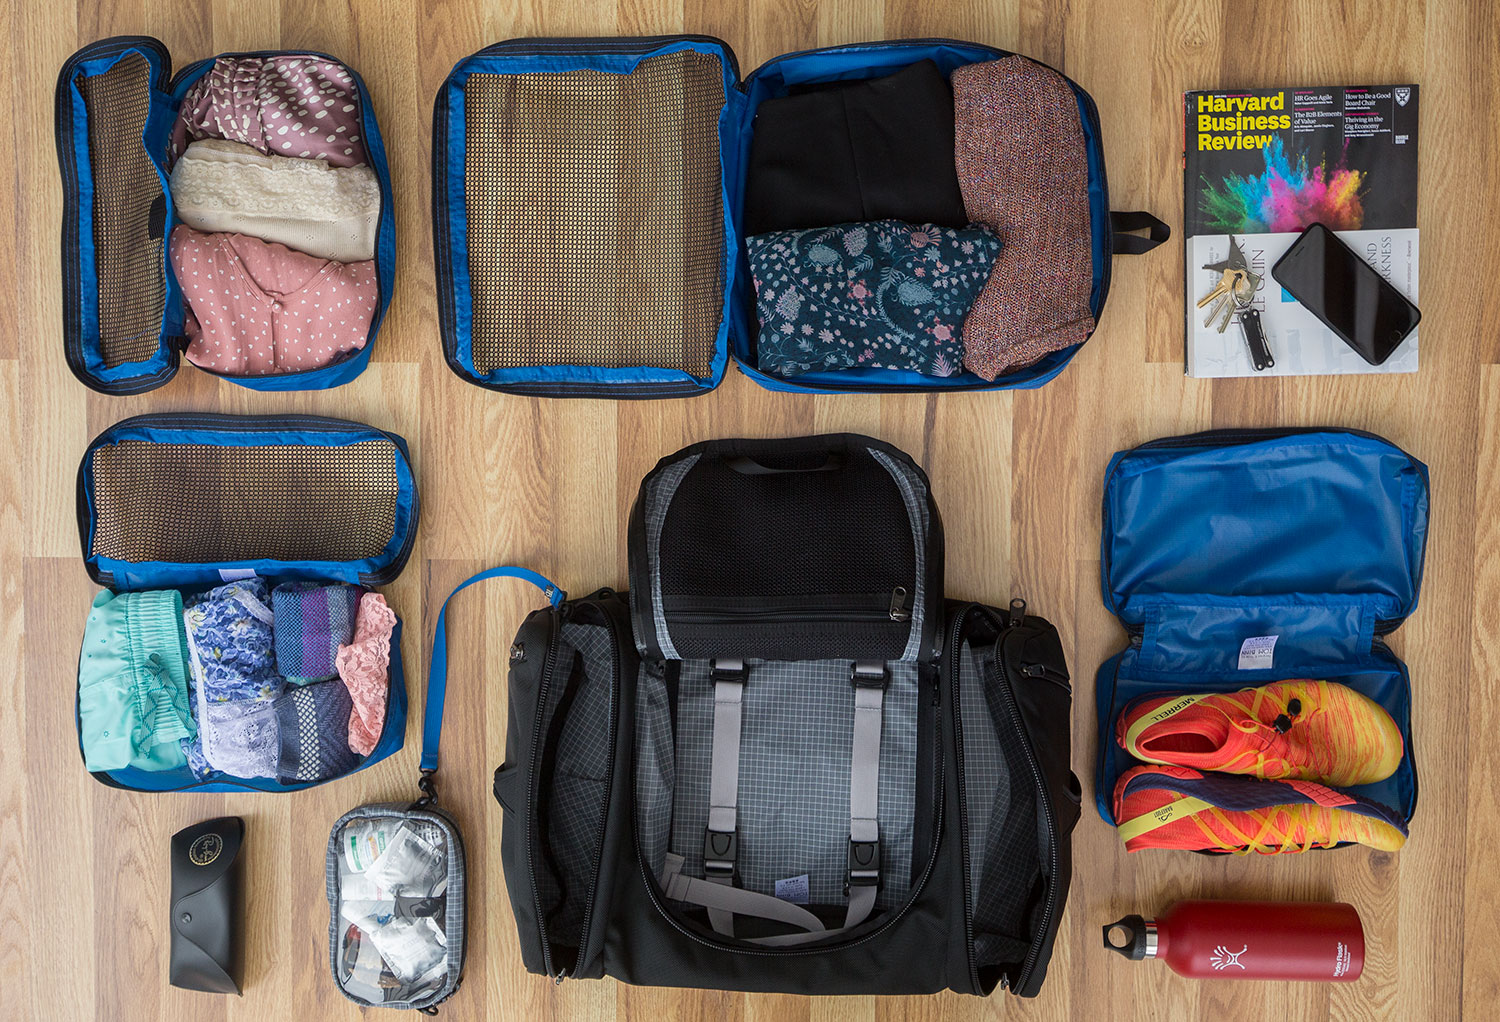 aeronaut-30-packing-cubes-for-organized-travel.jpg